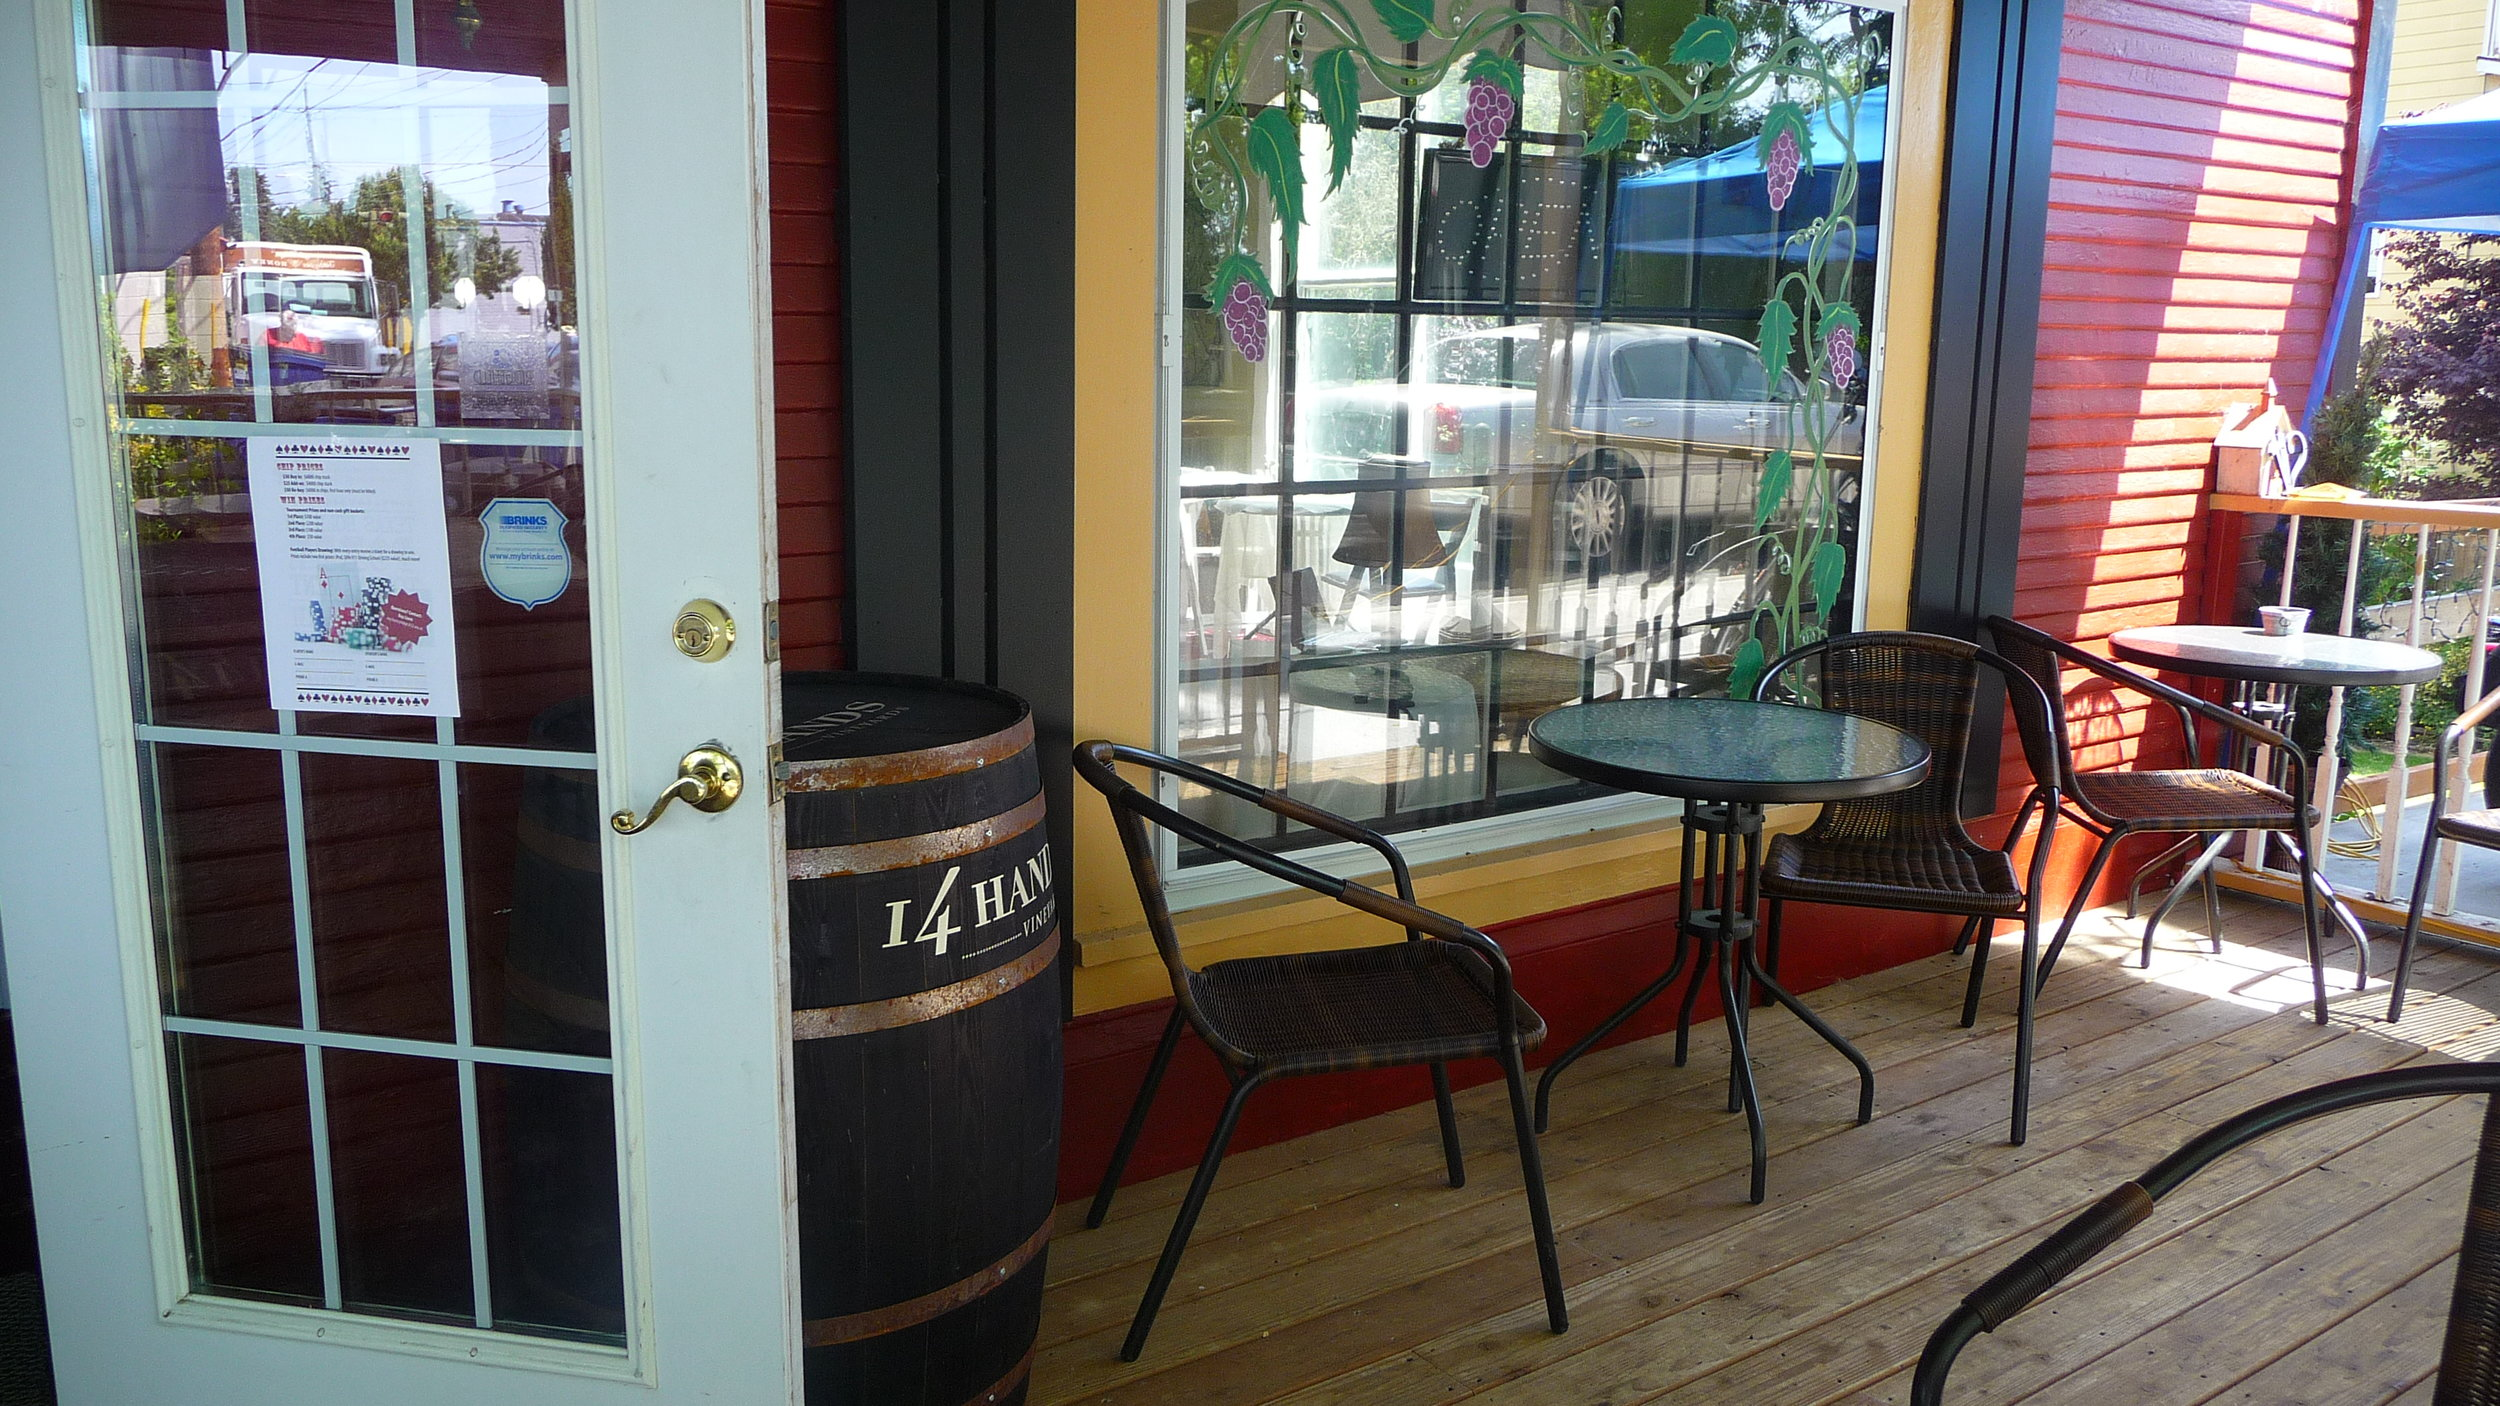 DJ's porch is an inviting space to enjoy a leisurely lunch and a glass of wine from Dee's local selection